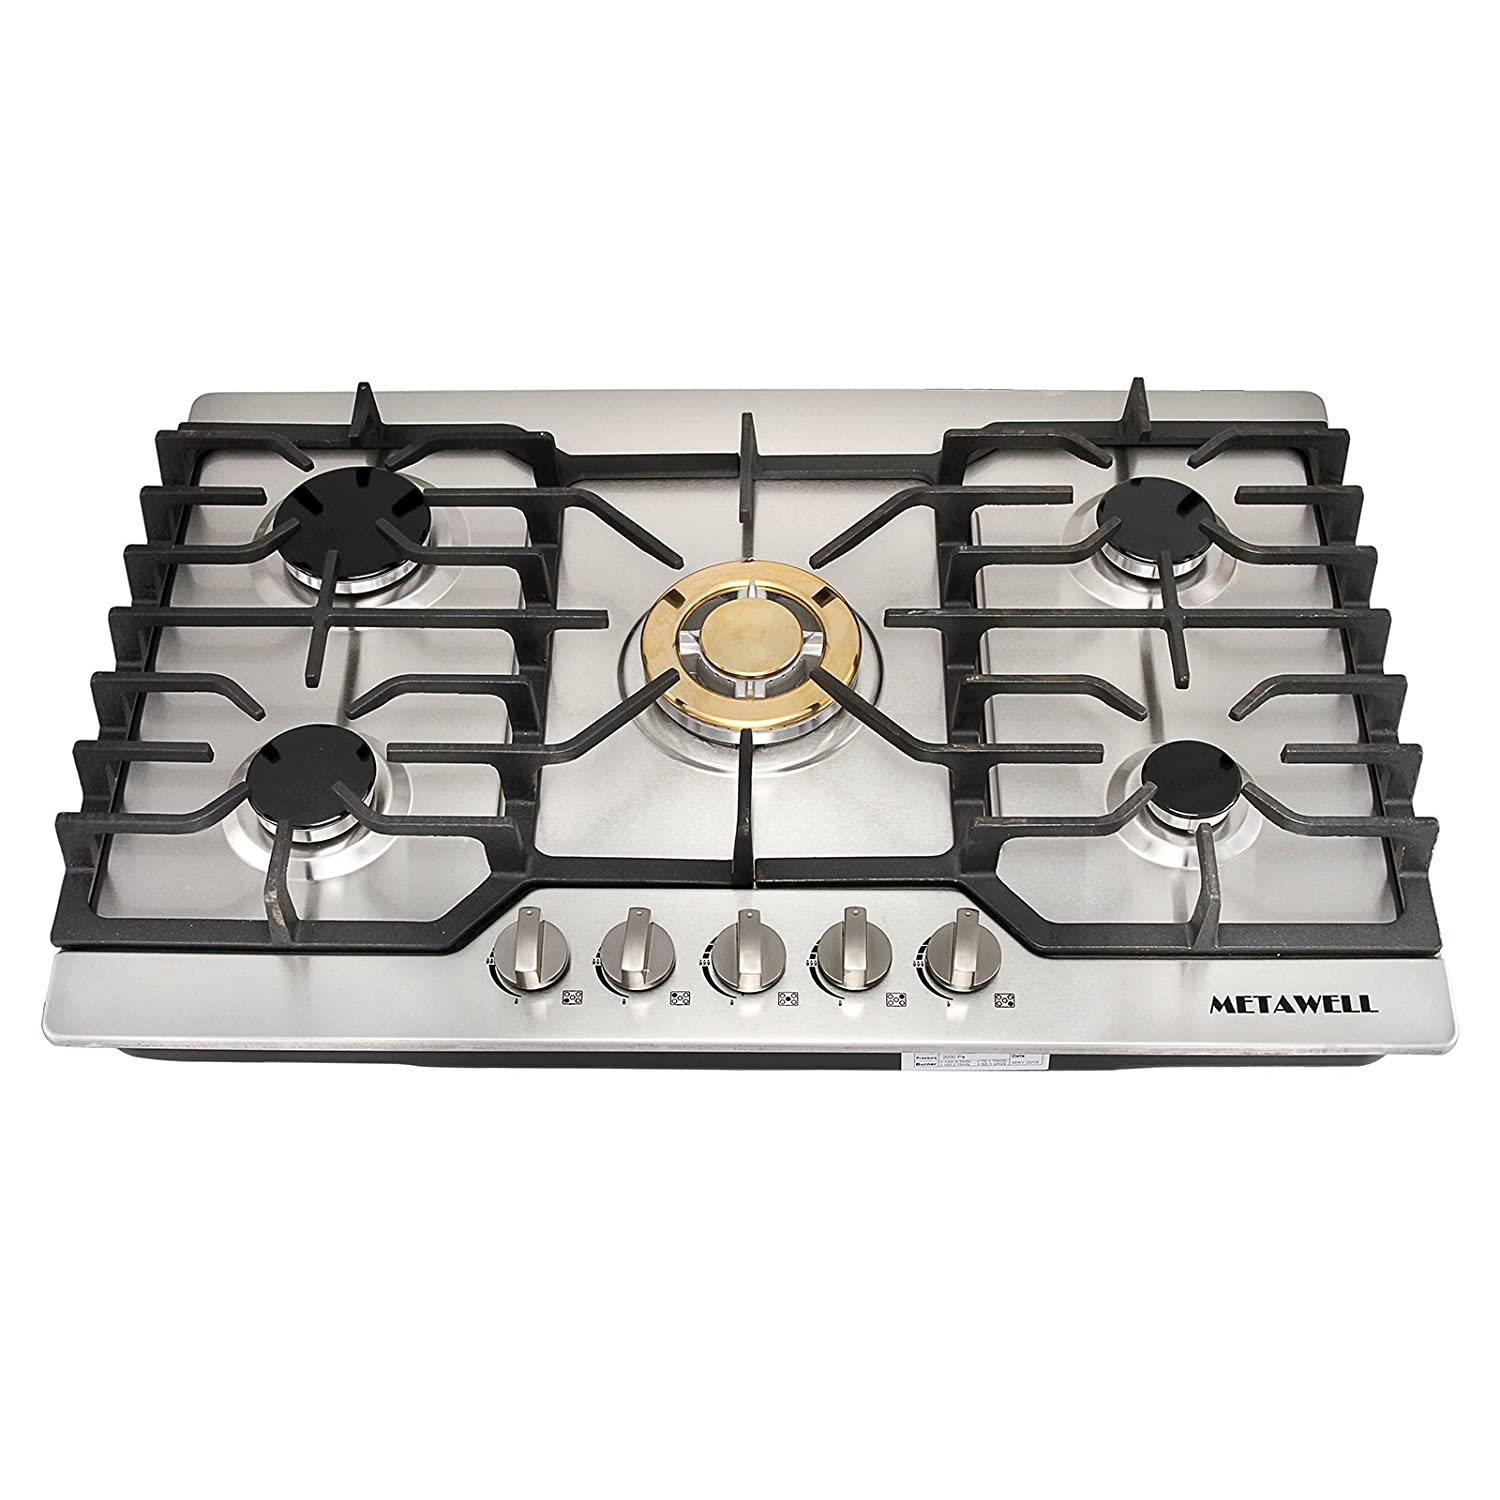 METAWELL 30 Stainless Steel Gold Burner Built-in 5 Stoves Natural Gas Cooktops Cooker